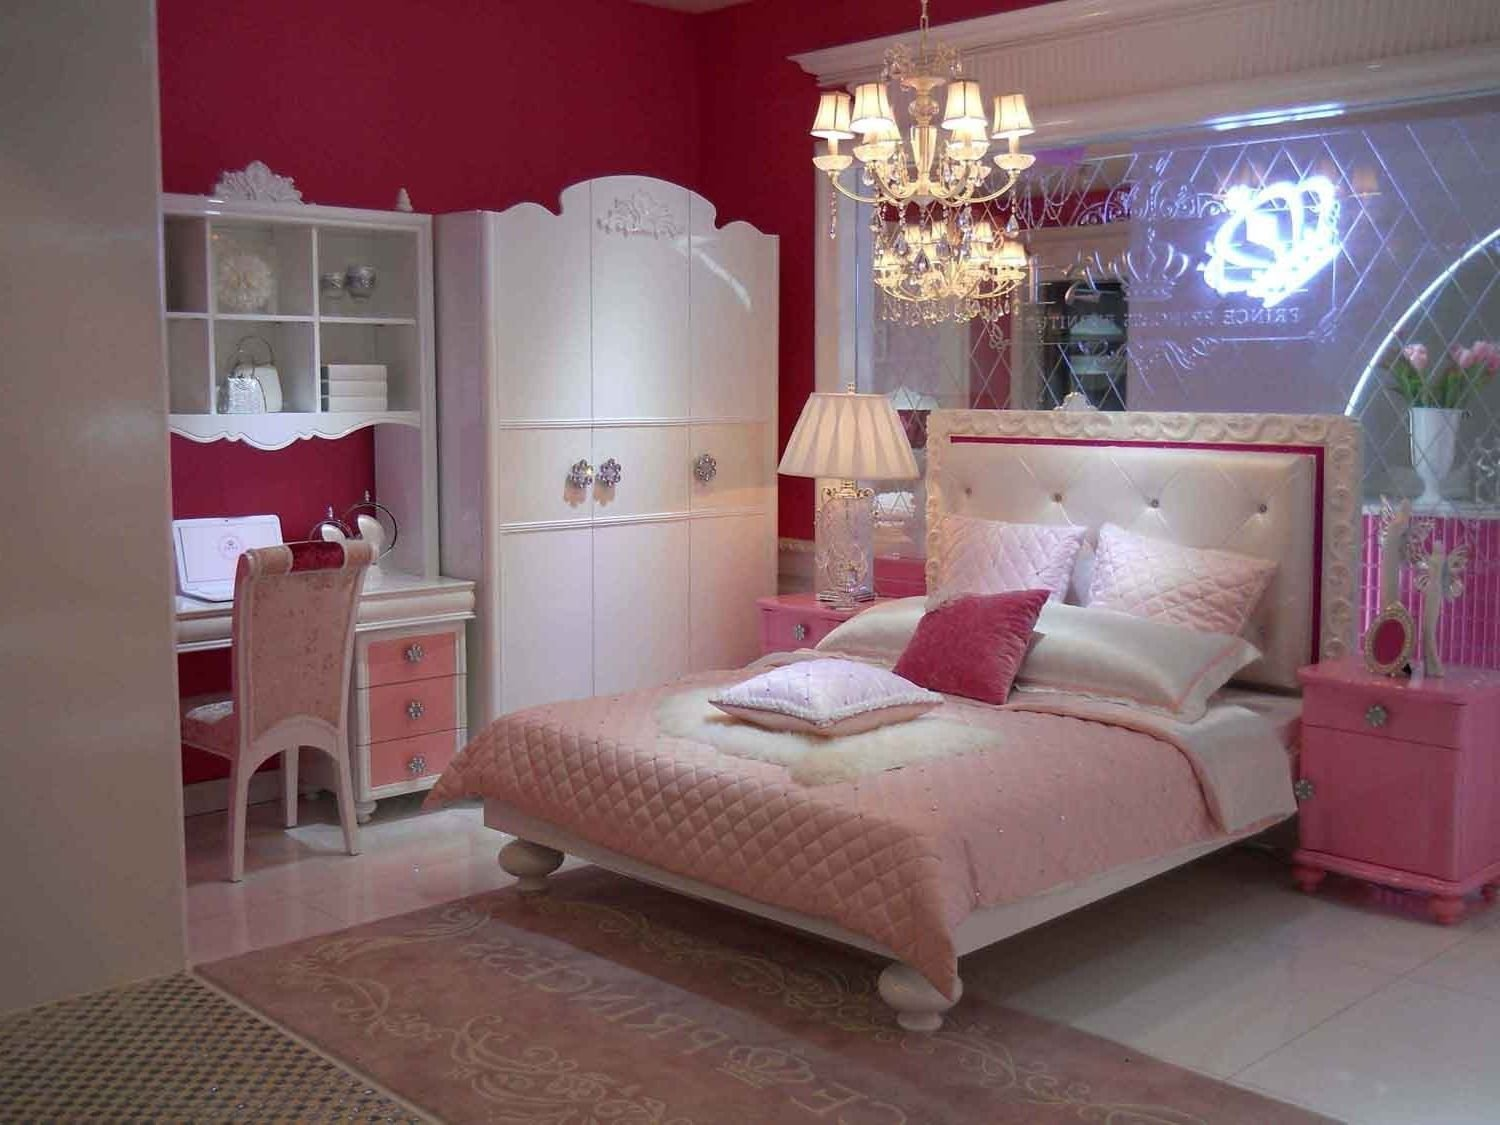 Bedroom Set for Kids Unique Bedroom Decor Princess Kids Bedroom Sets Furniture Sleeping